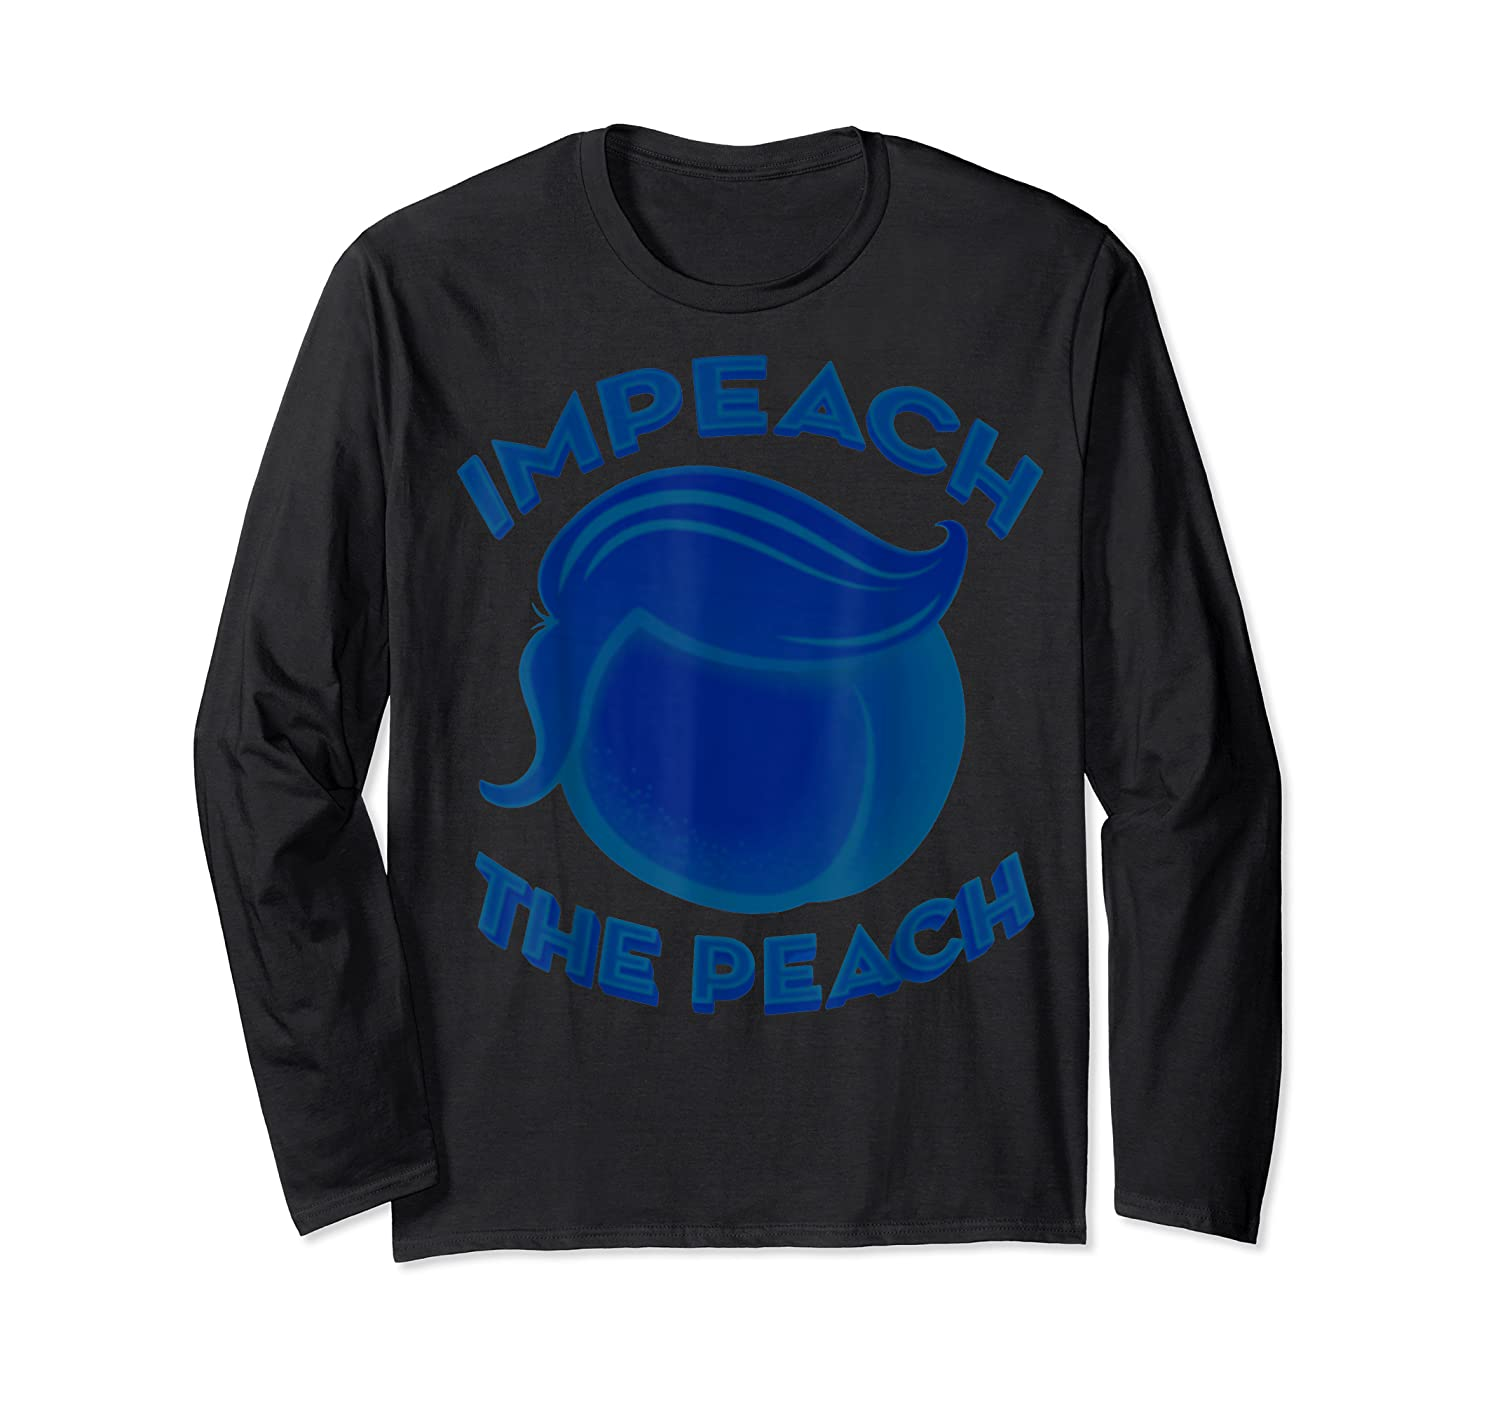 Impeach Halloween T Shirt For Girls And Adults Long Sleeve T-shirt